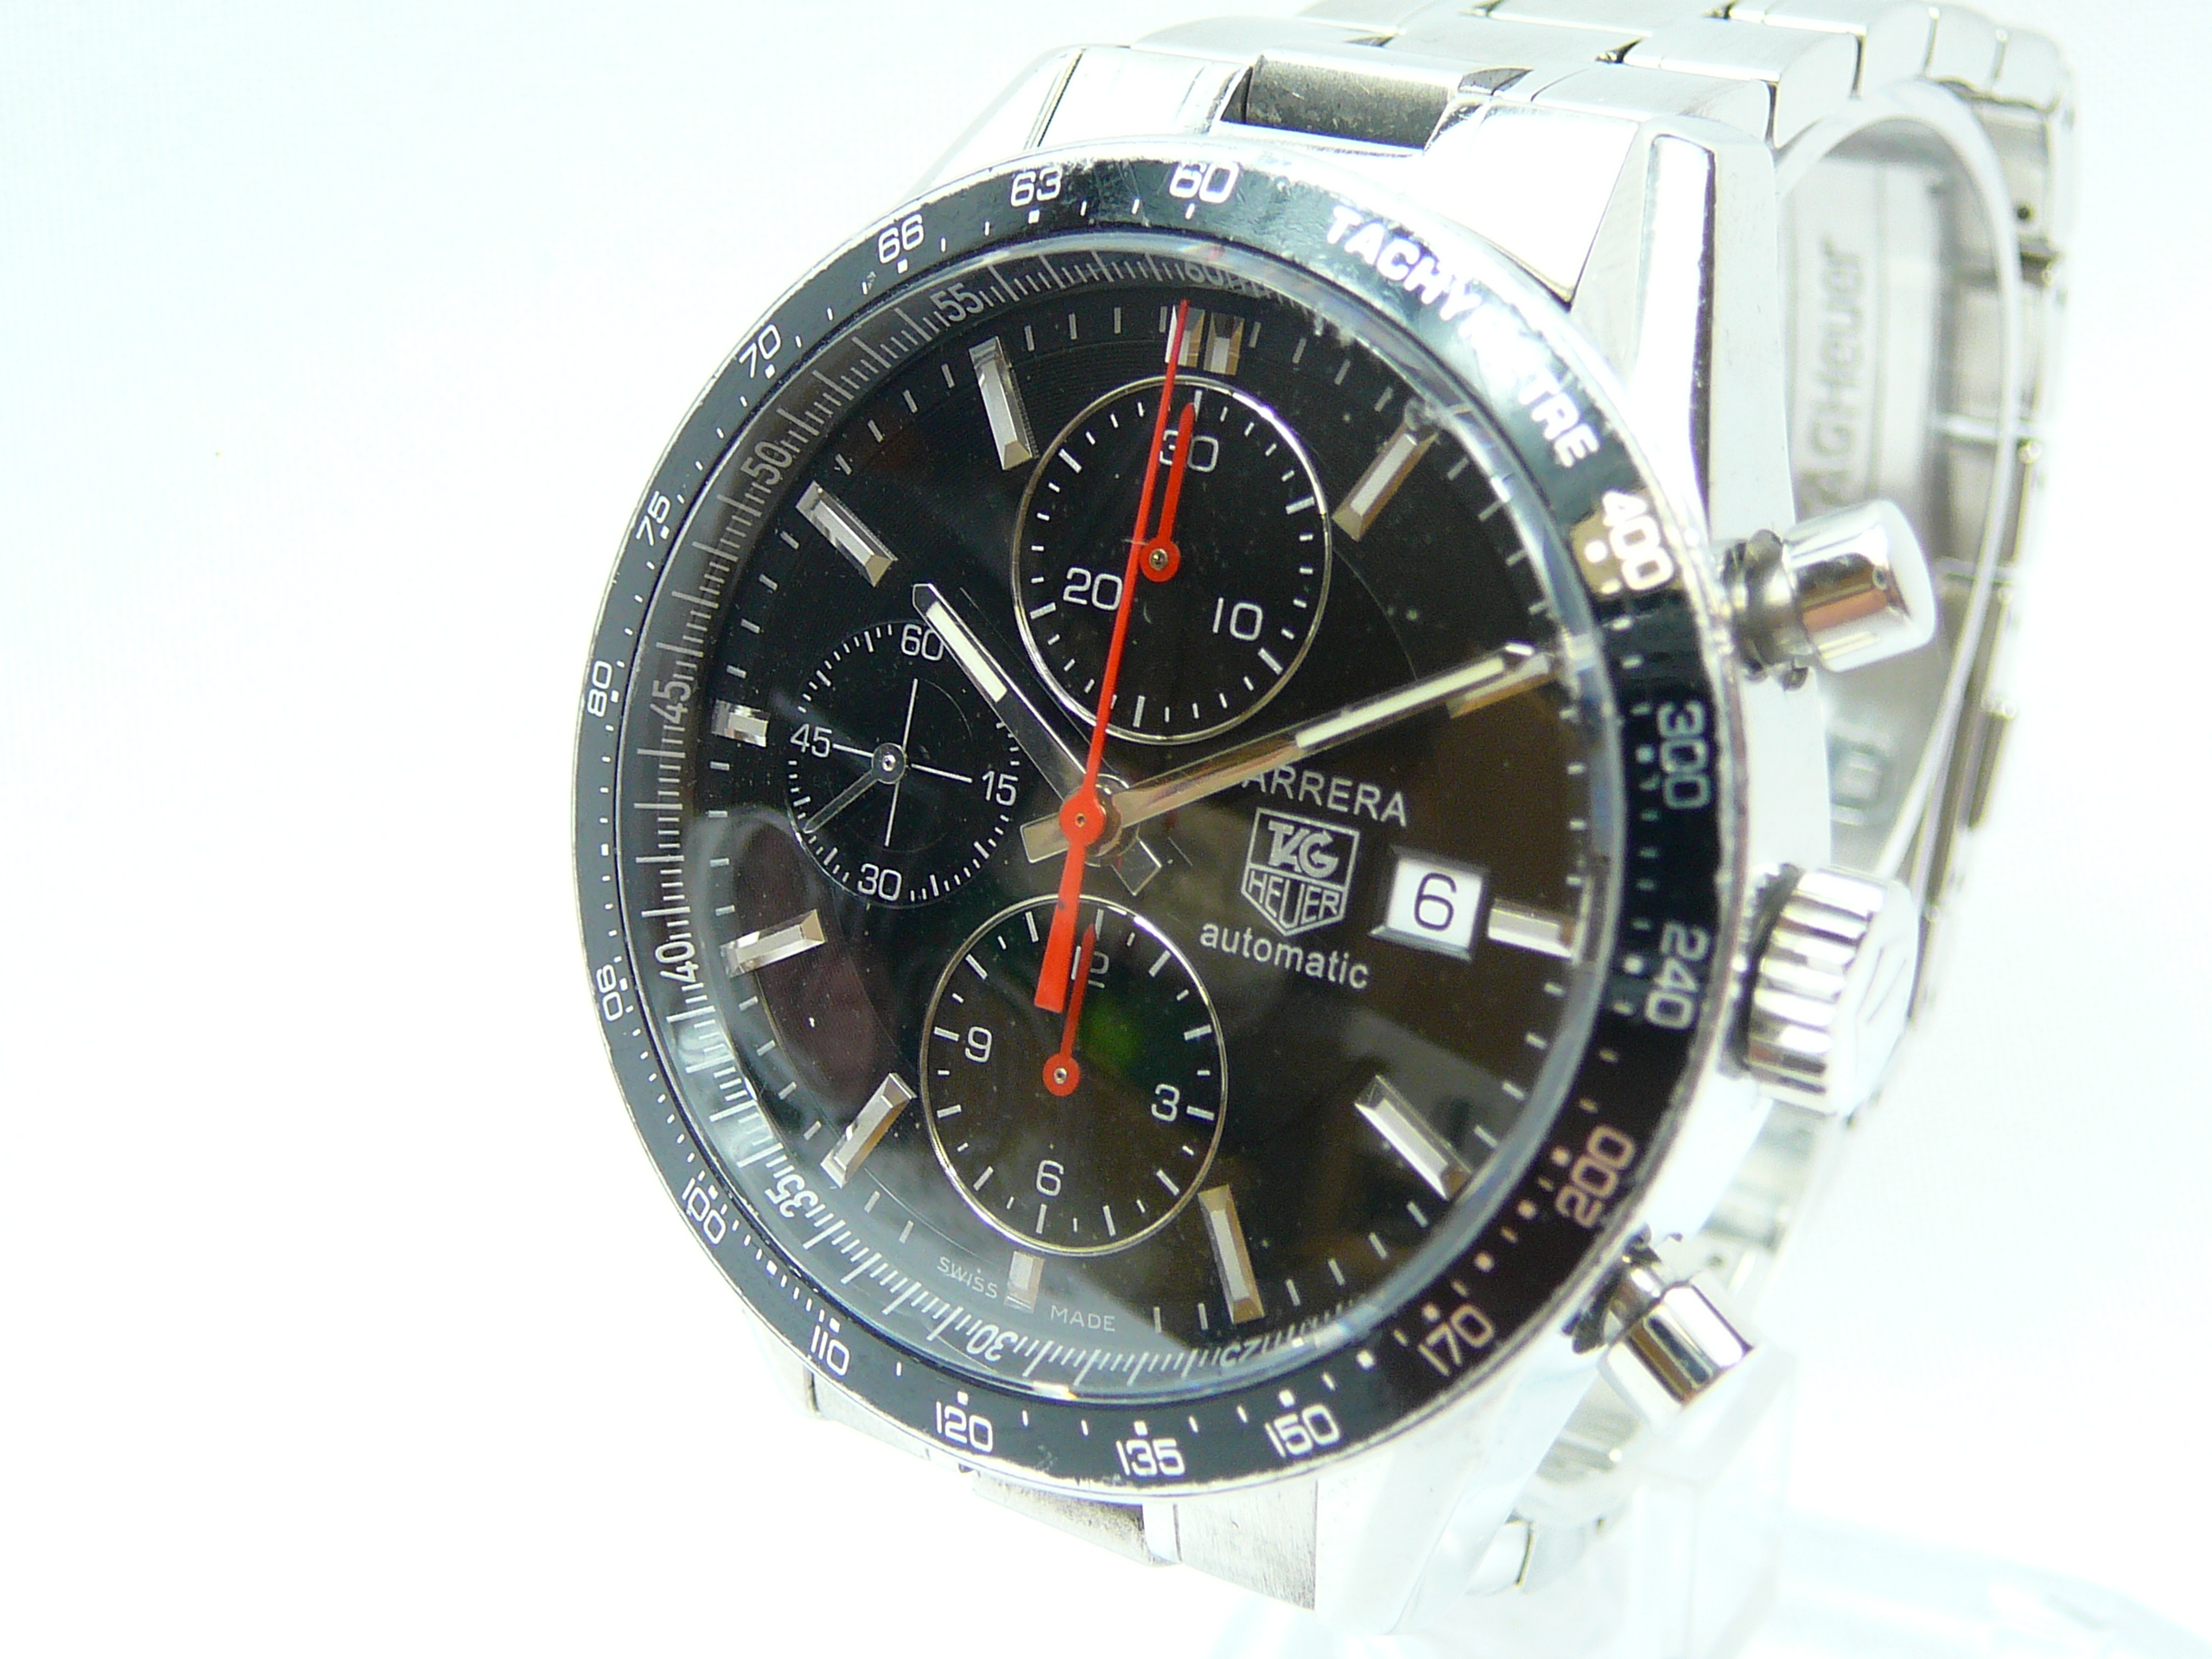 Gents Tag Heuer Wrist Watch - Image 2 of 4